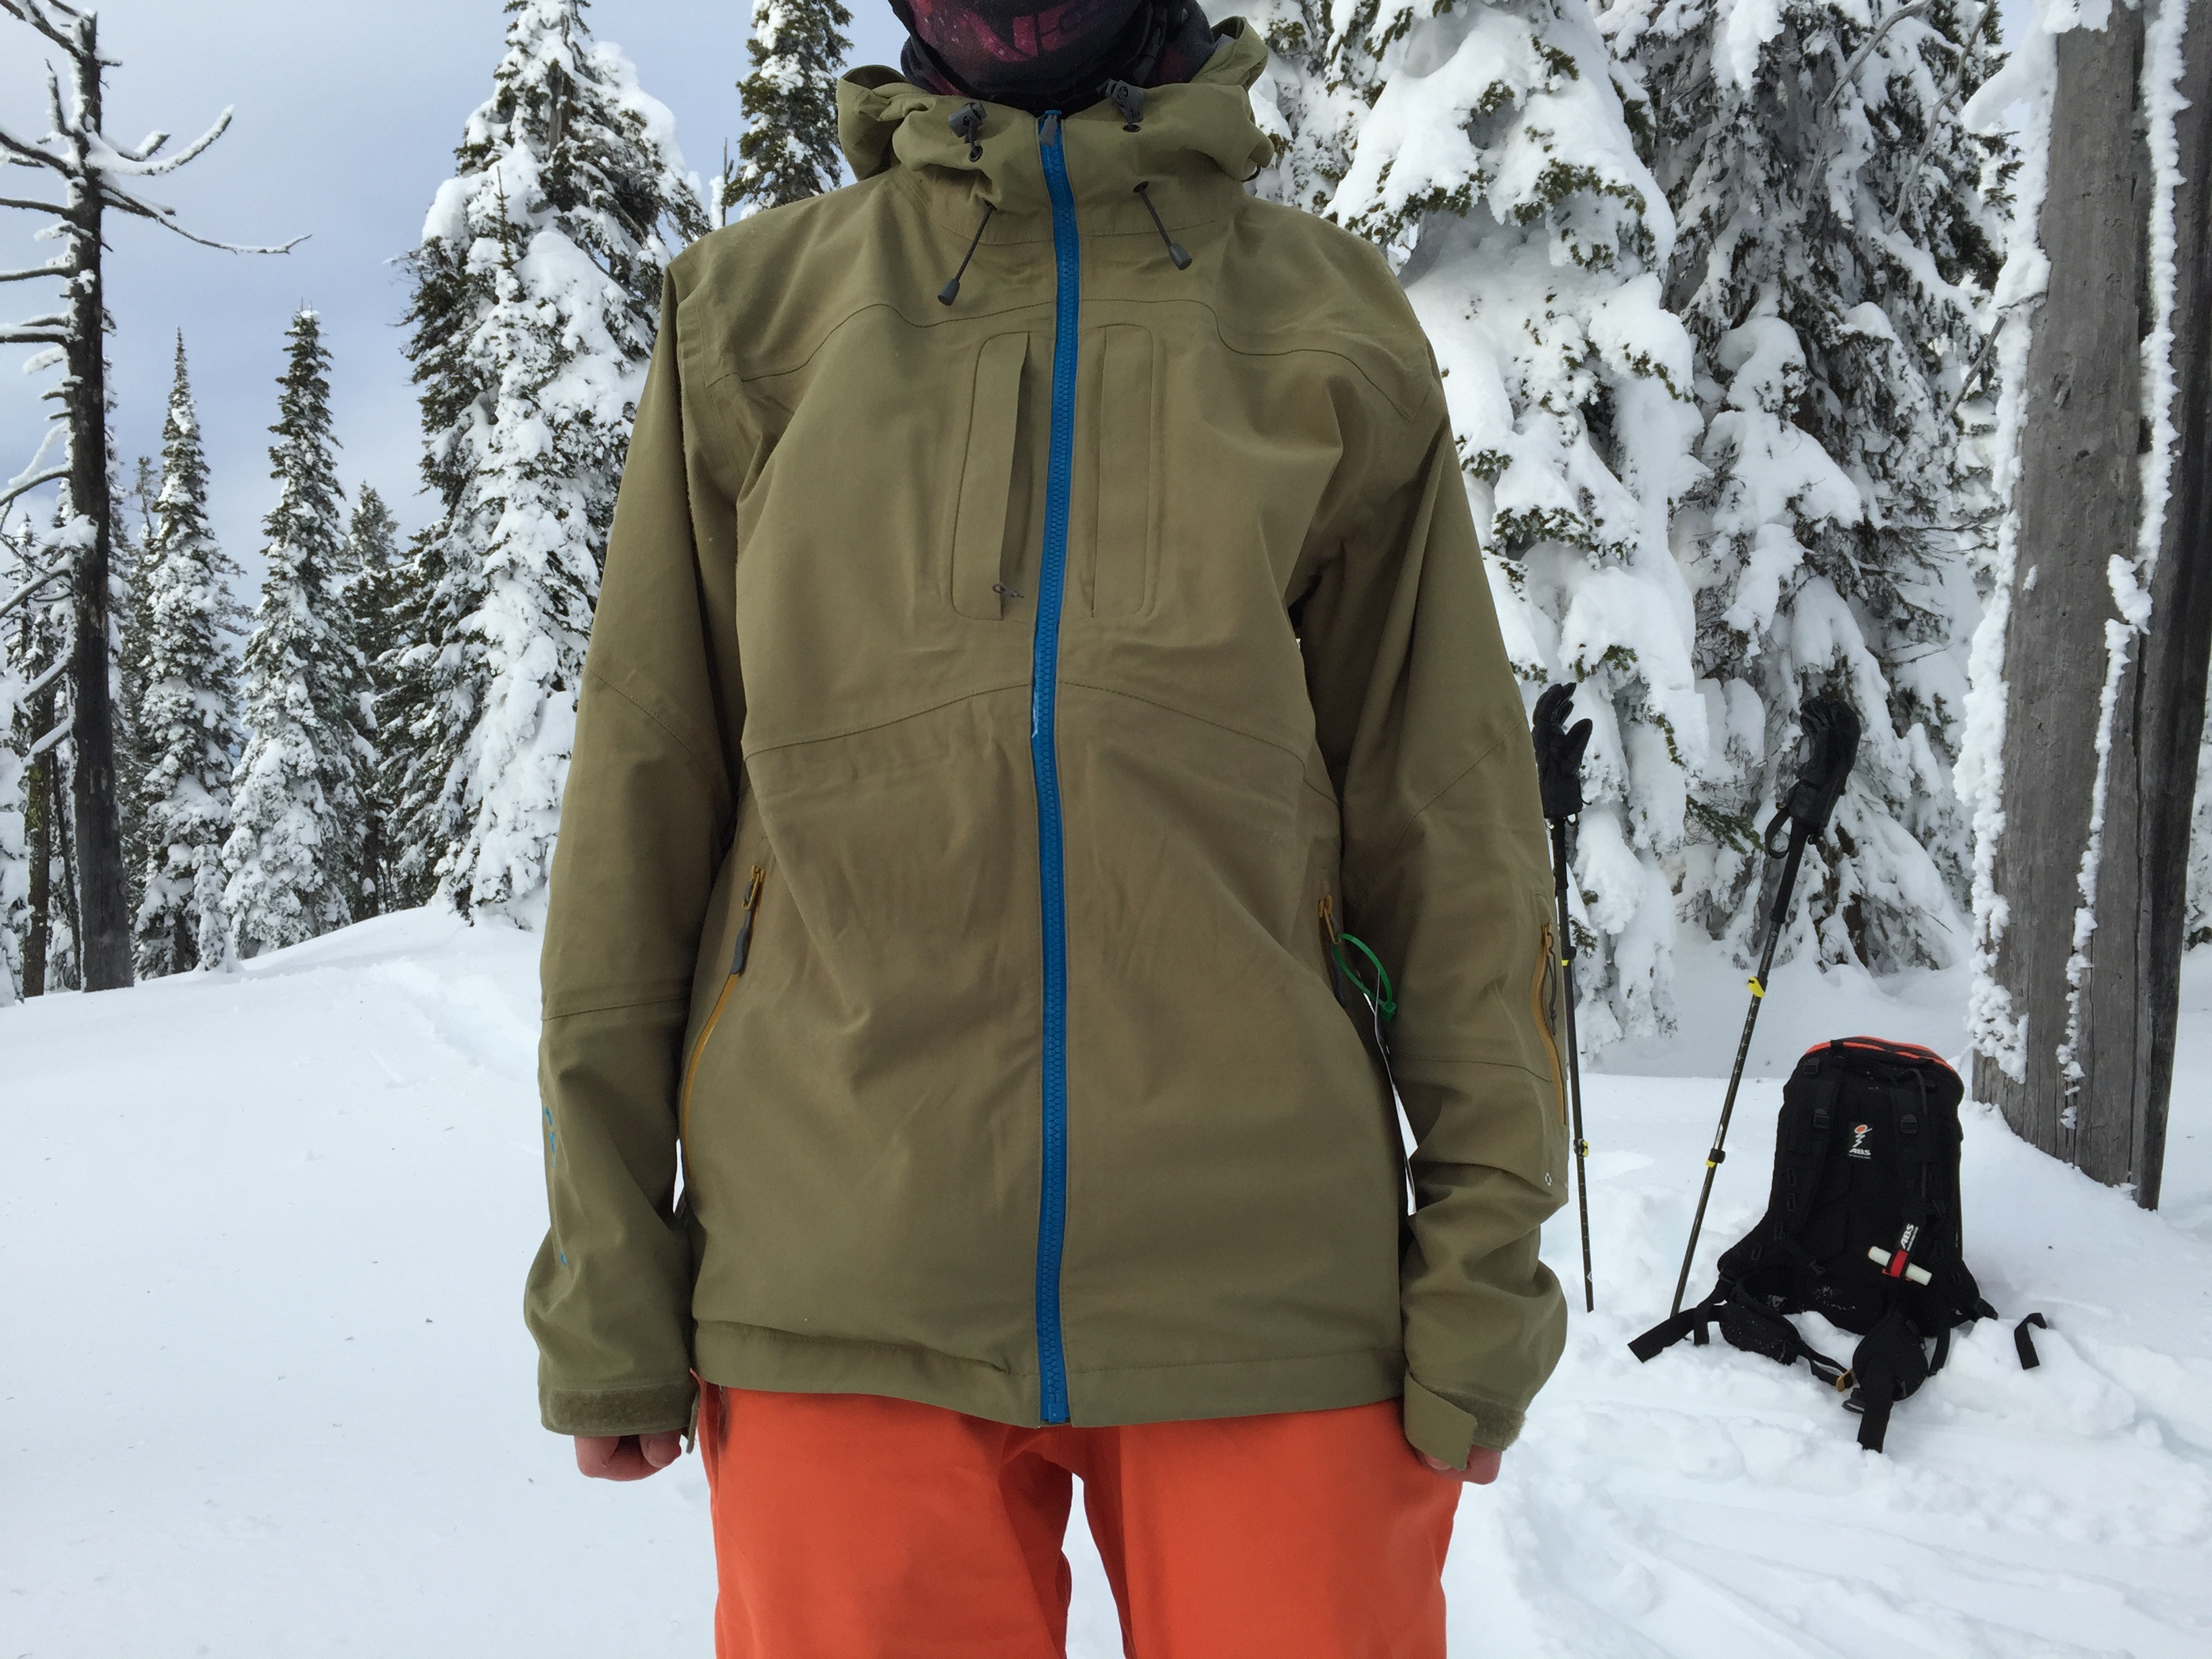 Relaxed fit of Quantum Pro Jacket.